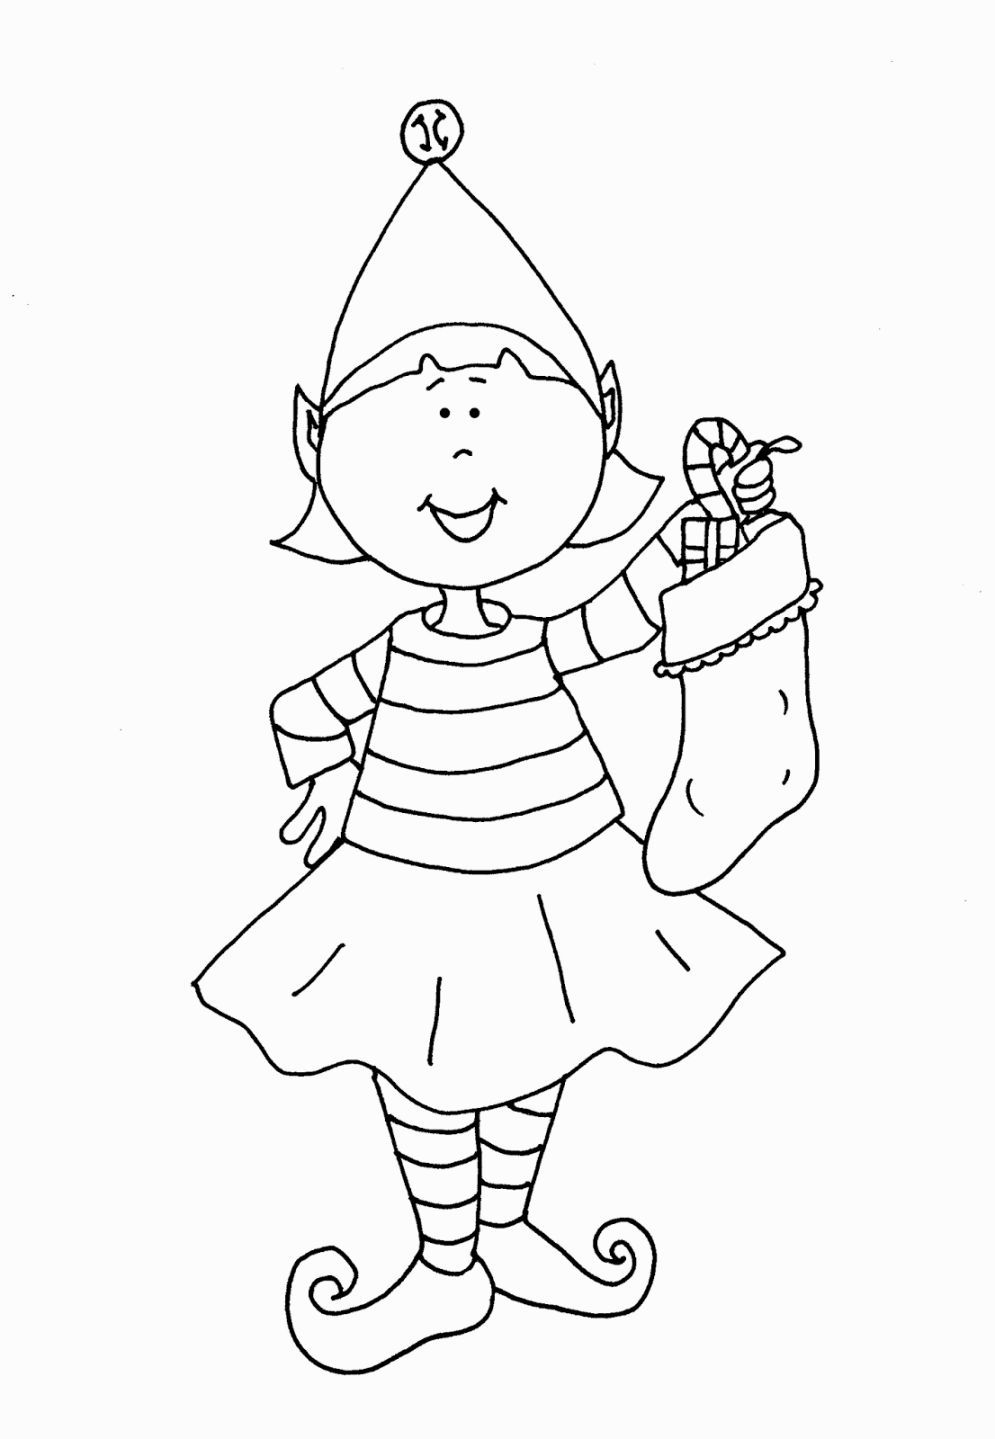 Elf Printable Coloring Pages | Coloring Pages | Pinterest | Elves ...